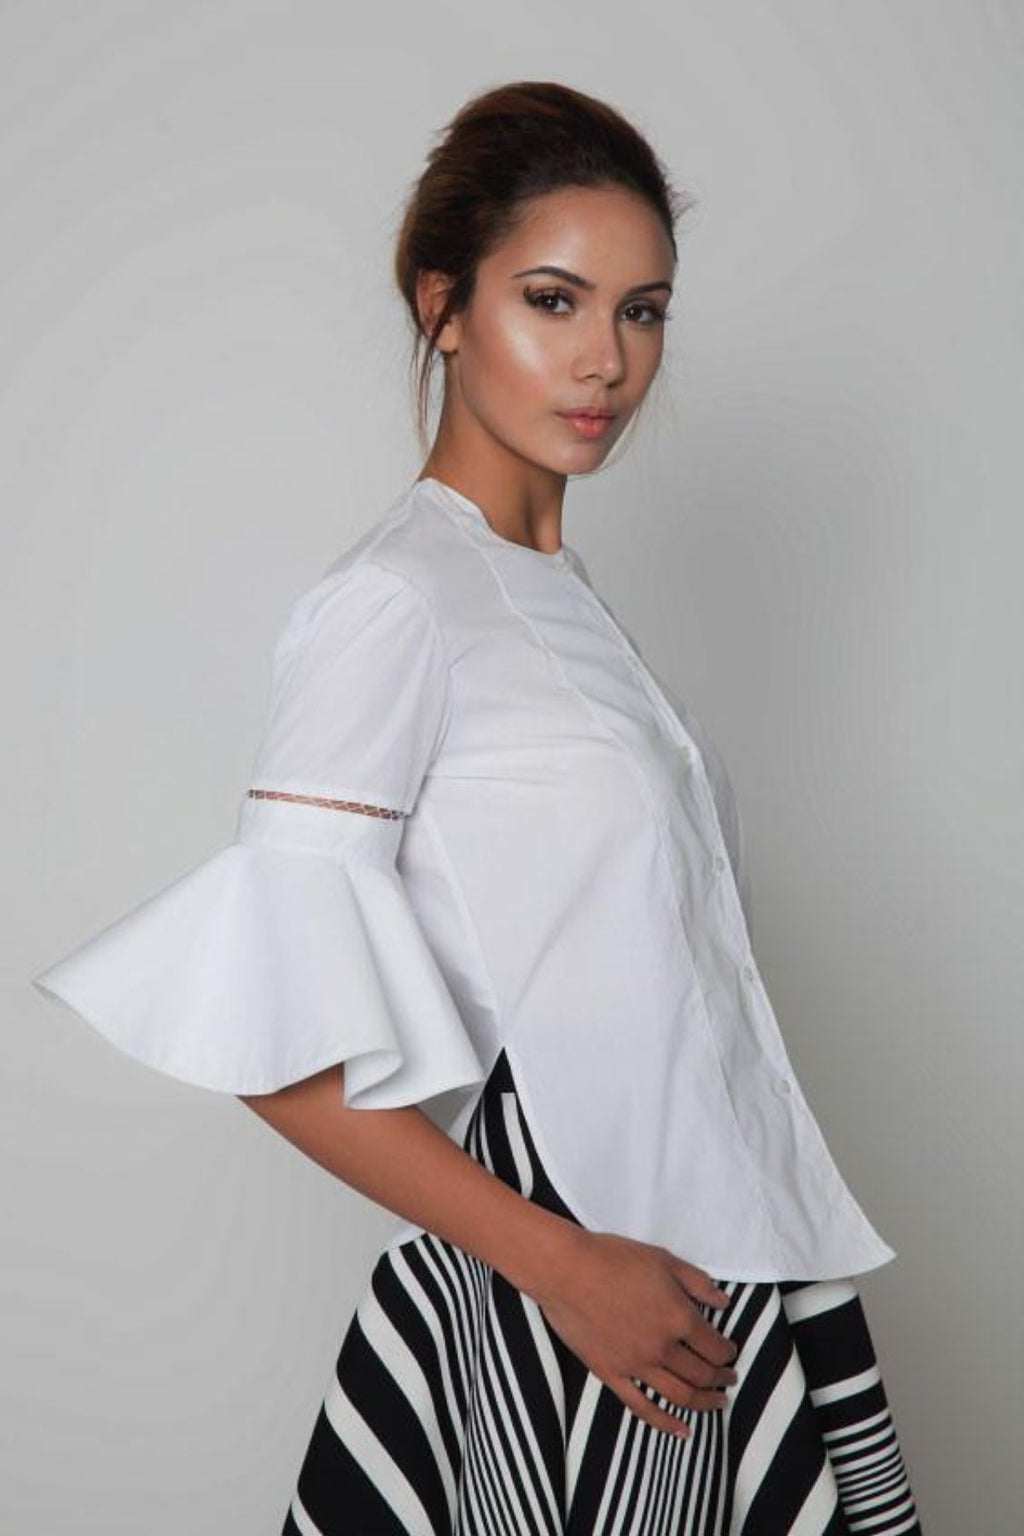 Kundiman Shirt Shirts The Fashion Advocate ethical Australian fashion designer boutique Melbourne sustainable clothes